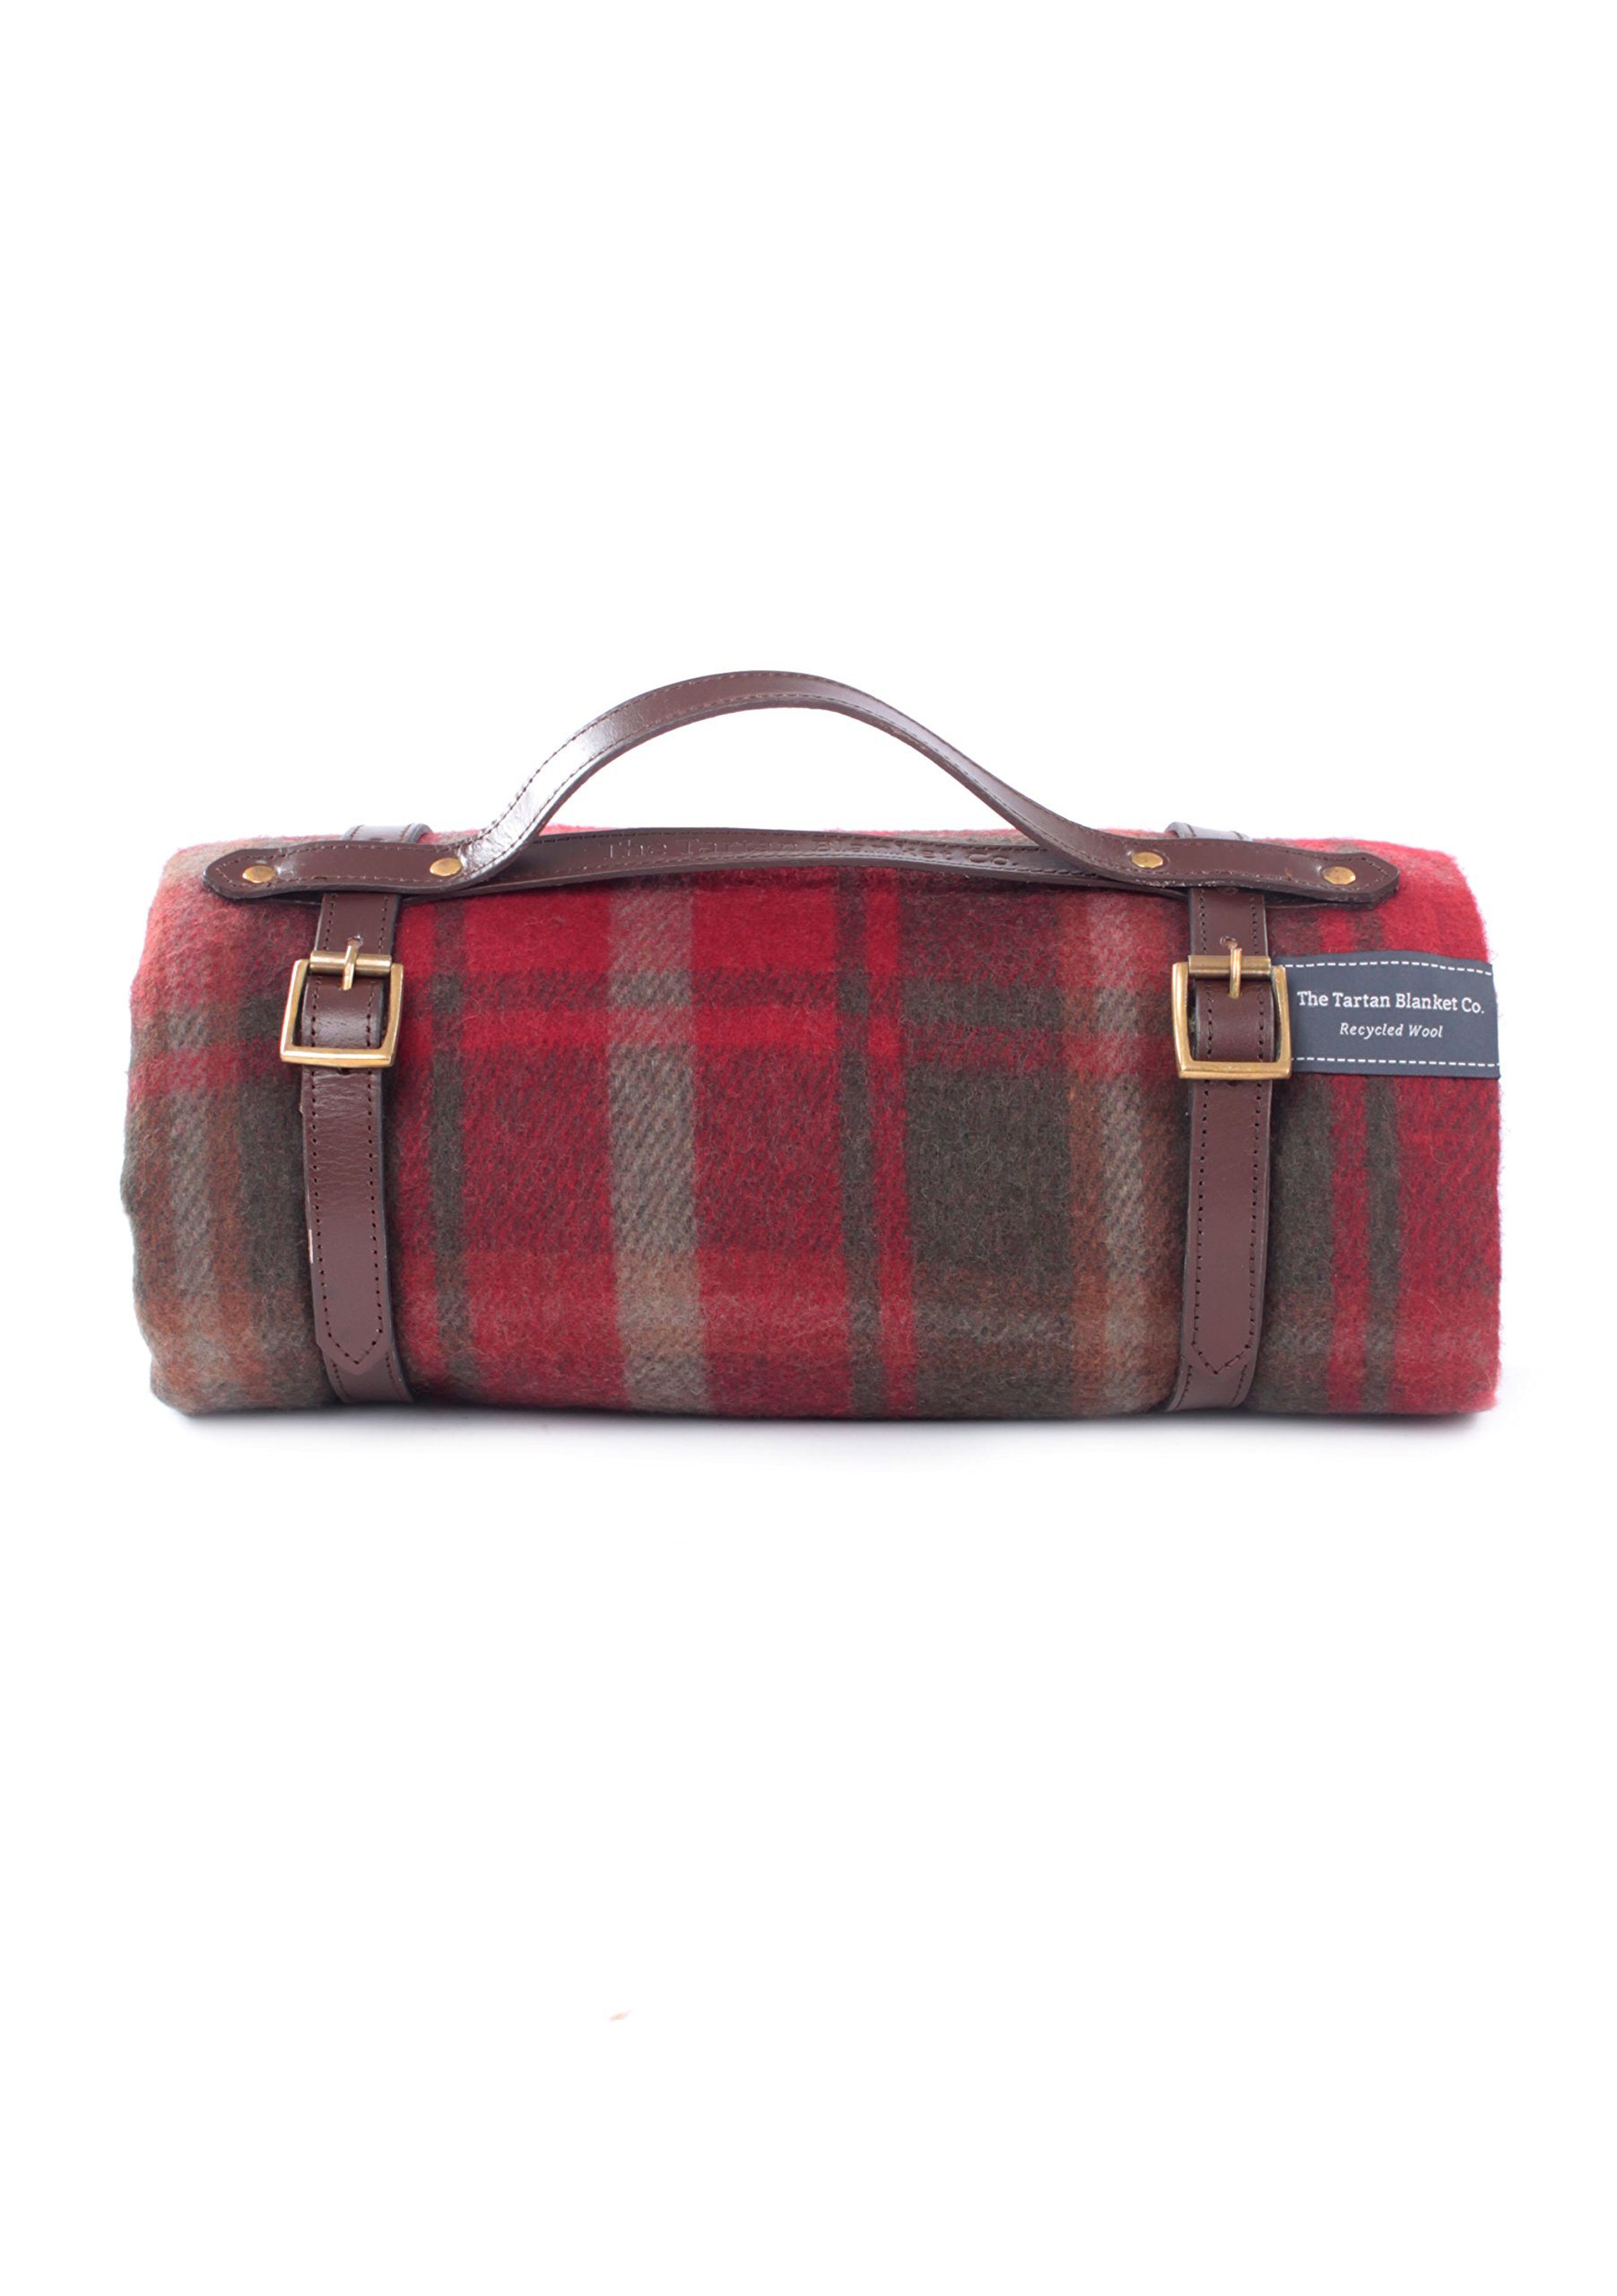 The Tartan Blanket Co. Recycled Wool Picnic Blanket with Brown Leather Strap (Dark Maple)